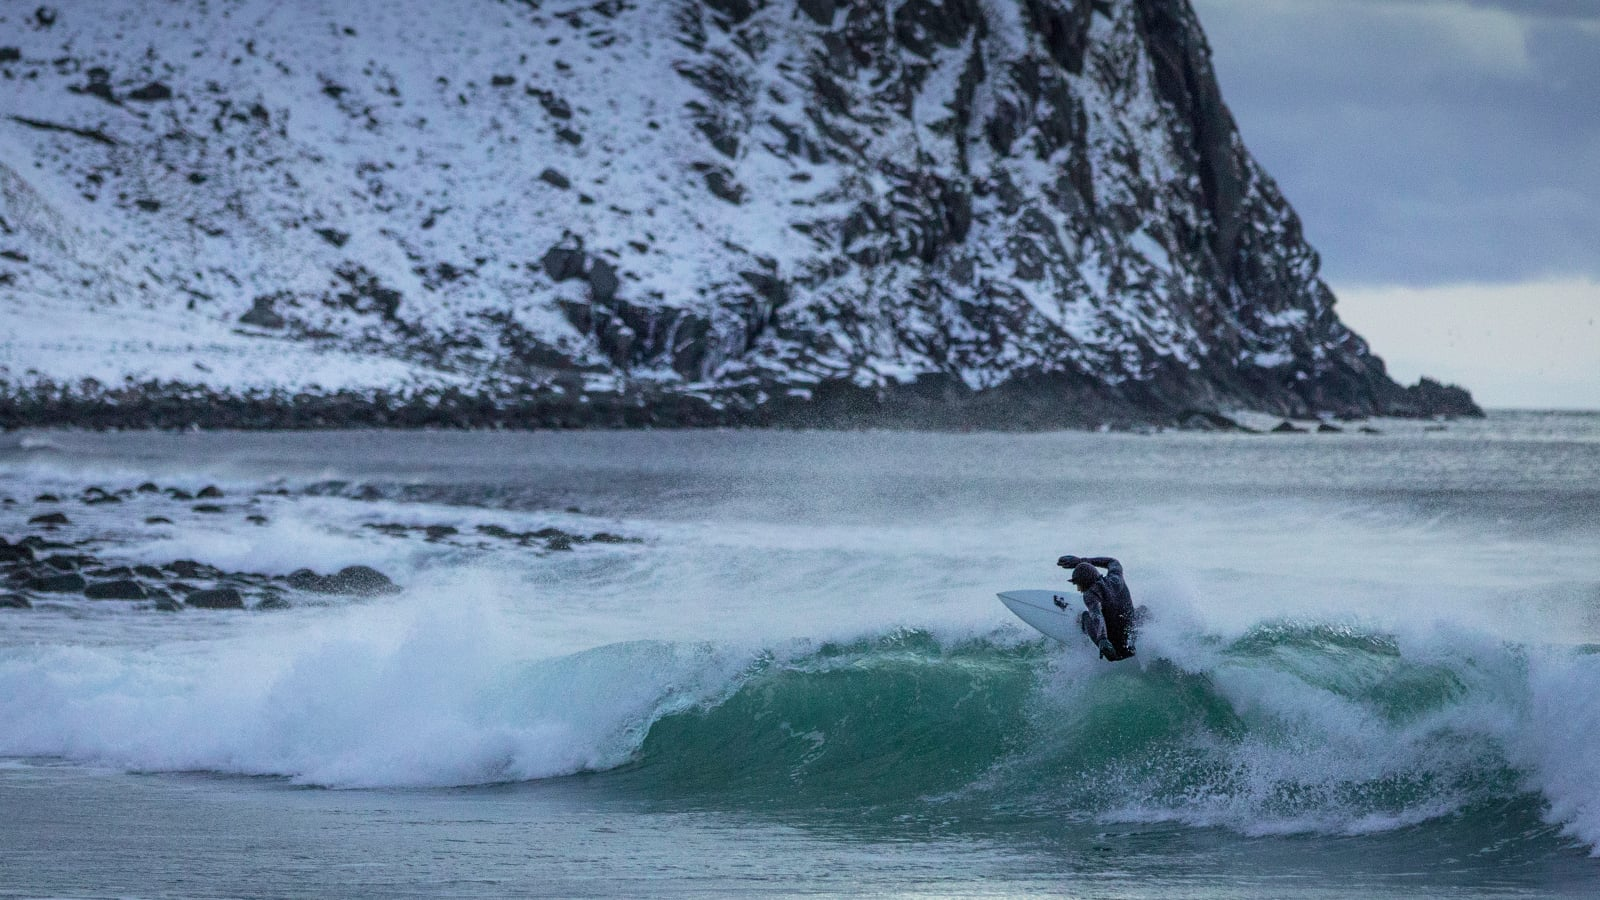 Norrøna Surfing - Arctic surf wetsuit and gear - Norrøna®